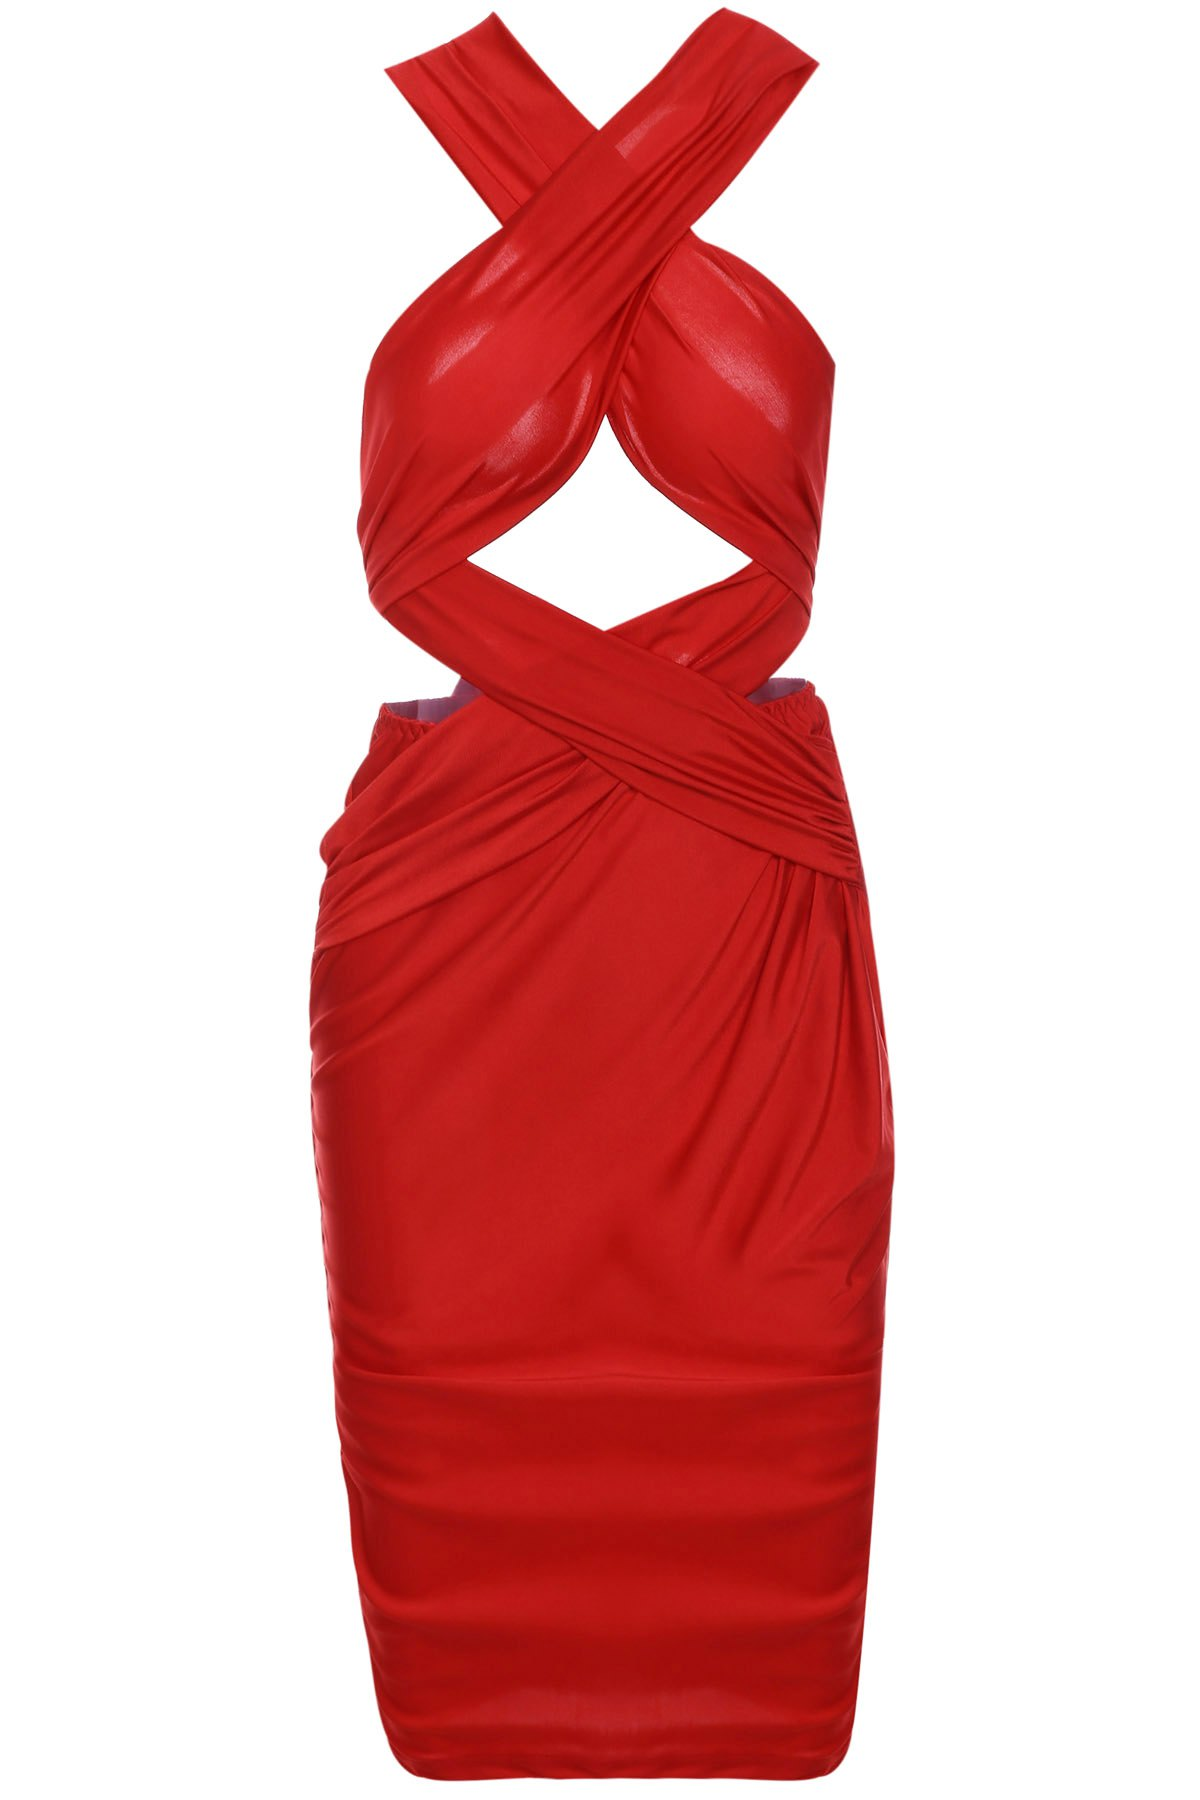 Sexy Sleeveless Solid Color Cut Out Bodycon Convertible Women's Dress - RED S